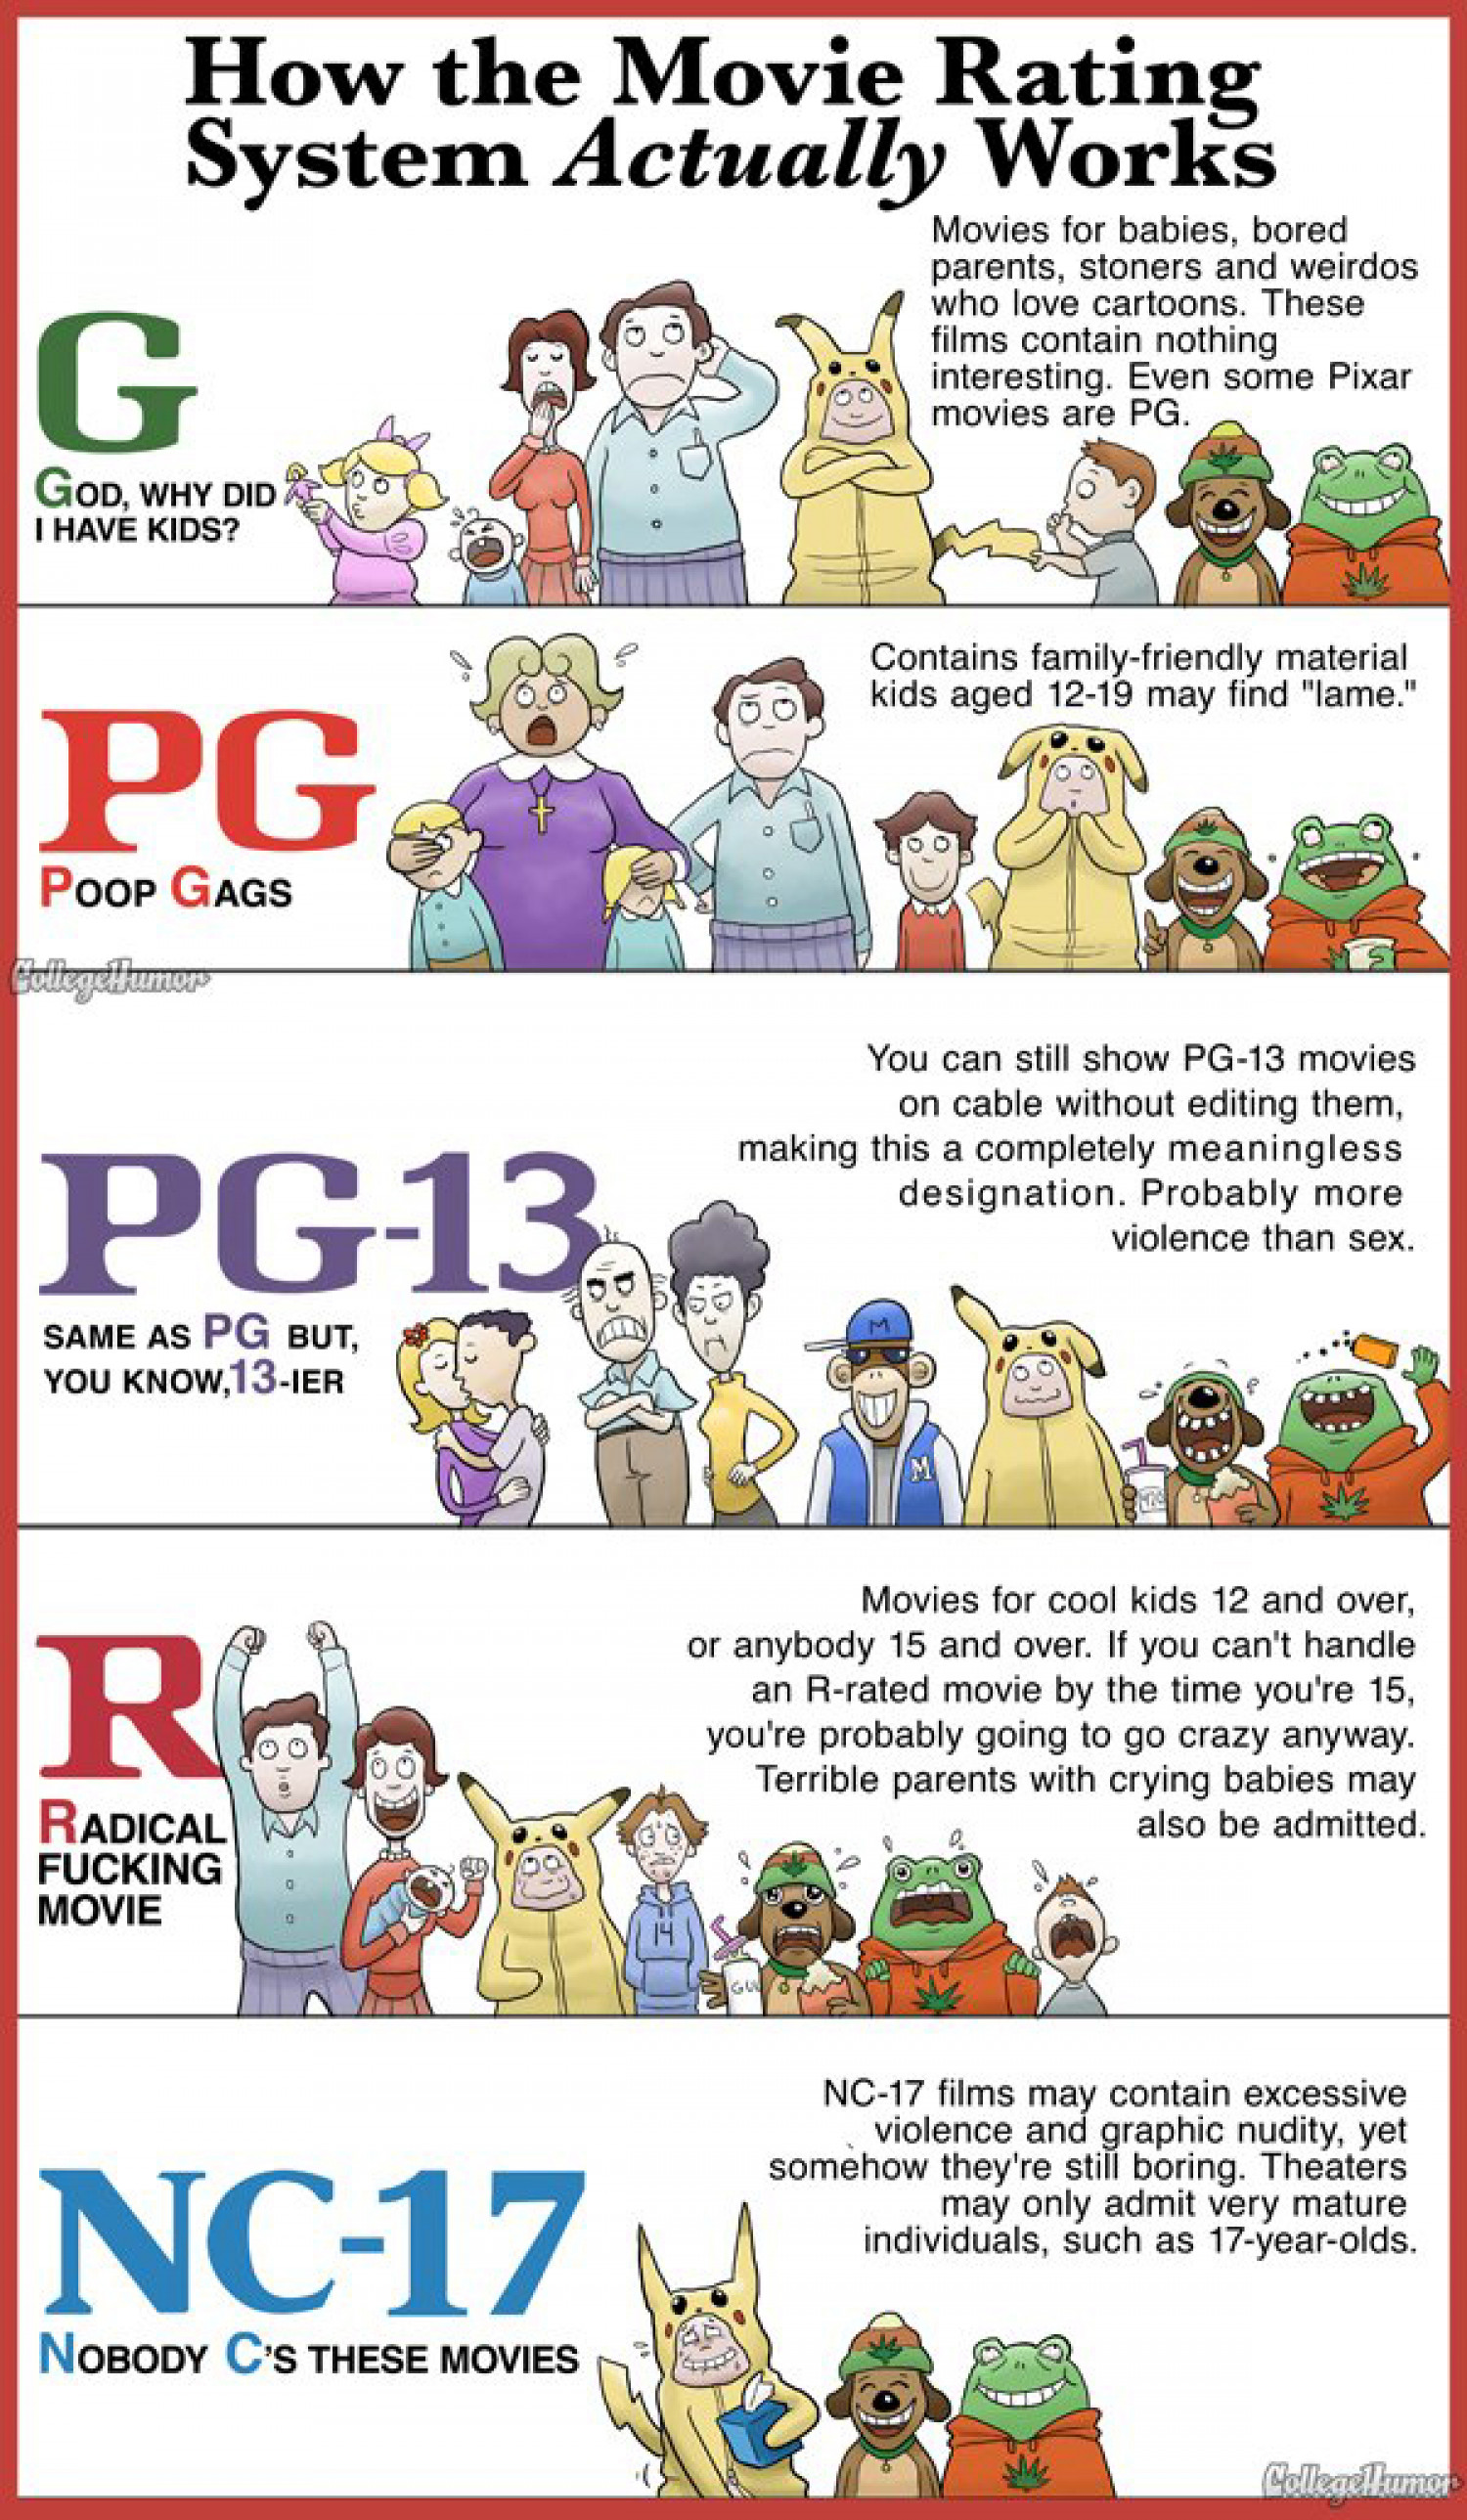 How The Movie Rating System Actually Works Infographic